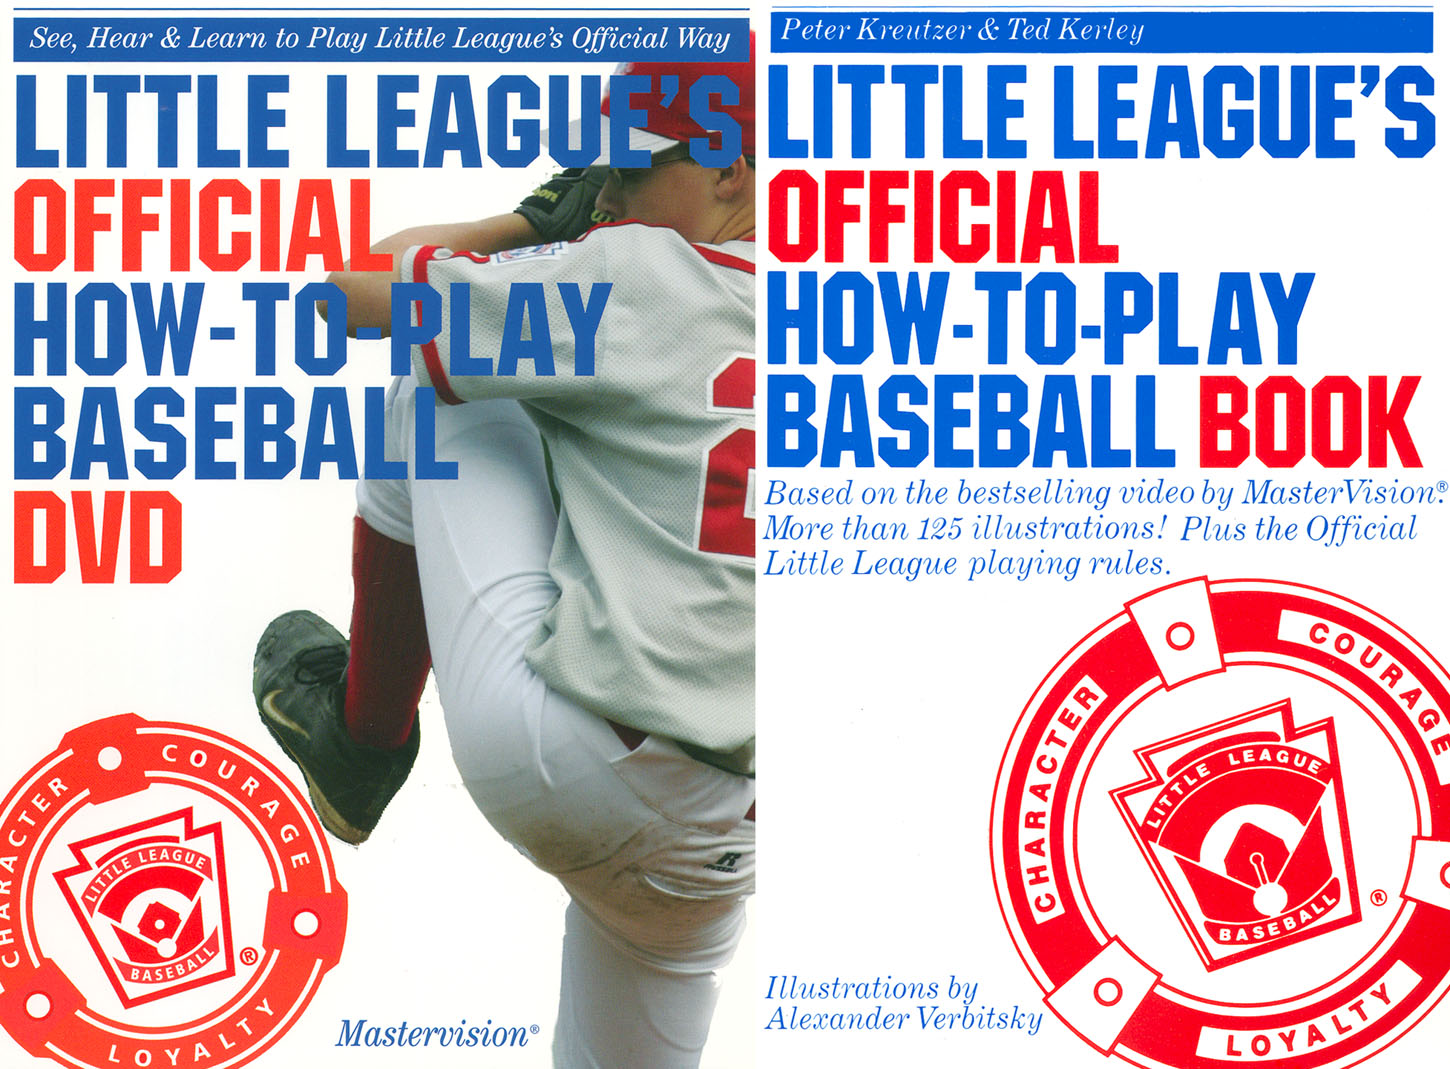 Little League's Official How-To-Play Baseball Video